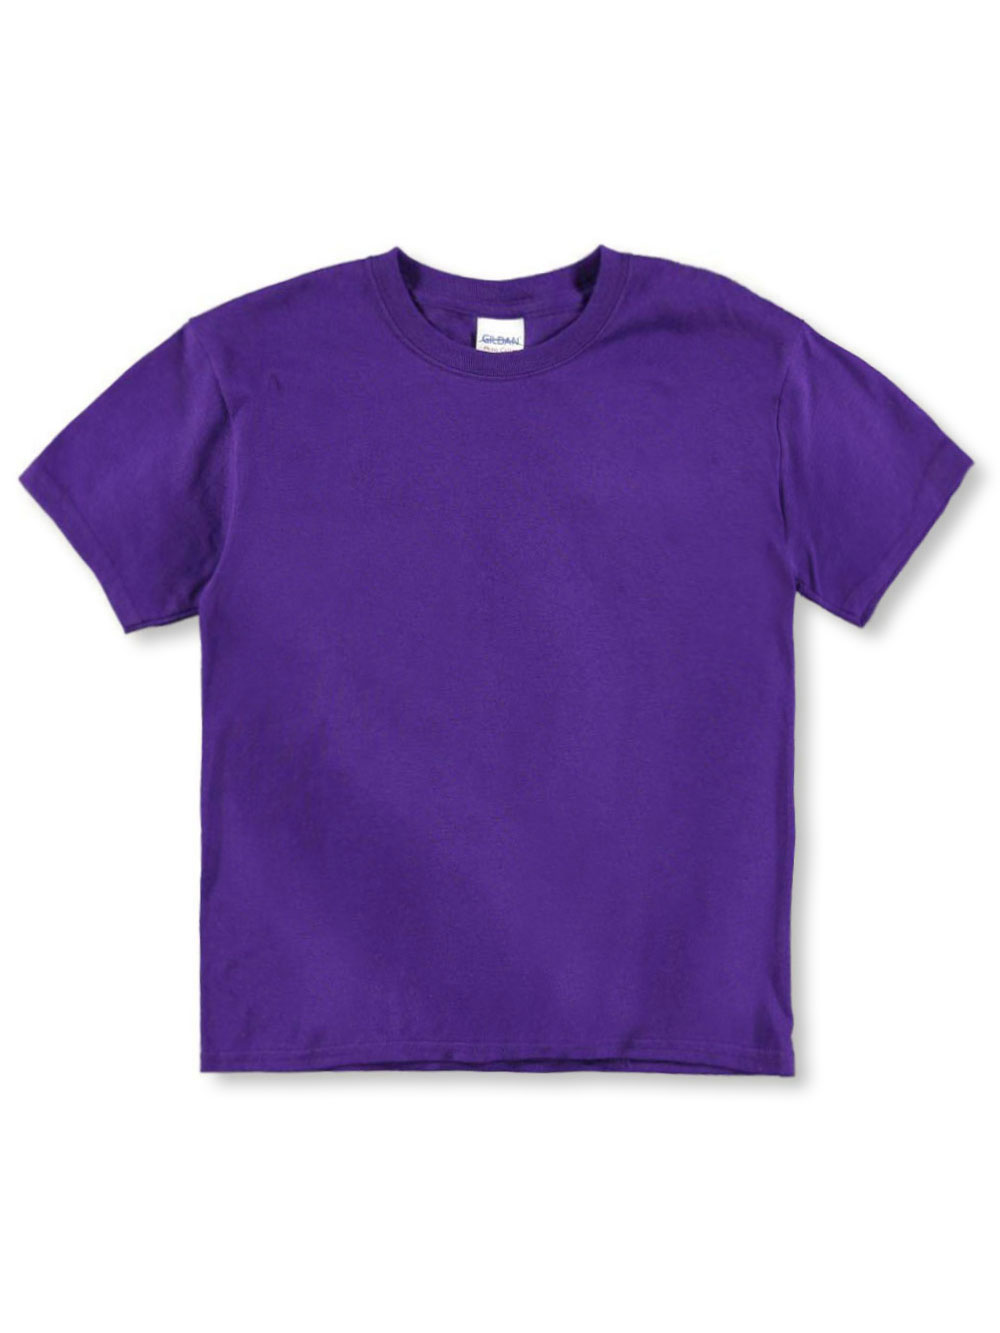 Image of Youth Short Sleeve Cotton TShirt  purple xl